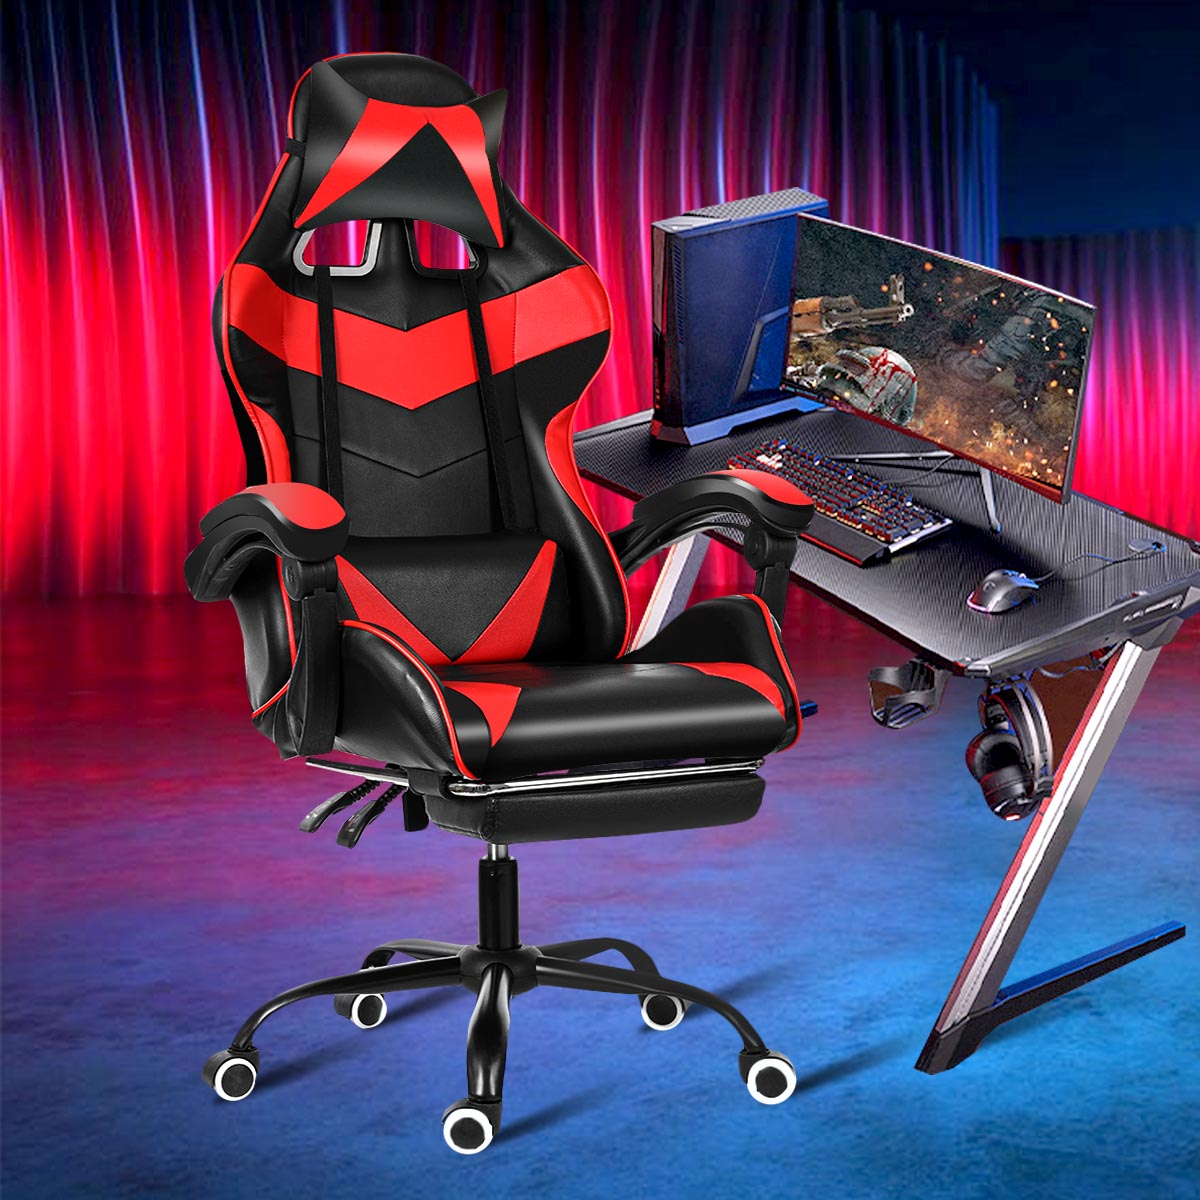 Hde44499672c94053baa27d4bcb211435A - Office Gaming Chair WCG Gaming Chair Home Internet Cafe Gamer Chair Ergonomic Computer Office Chair Swivel Lifting LyingFootrest